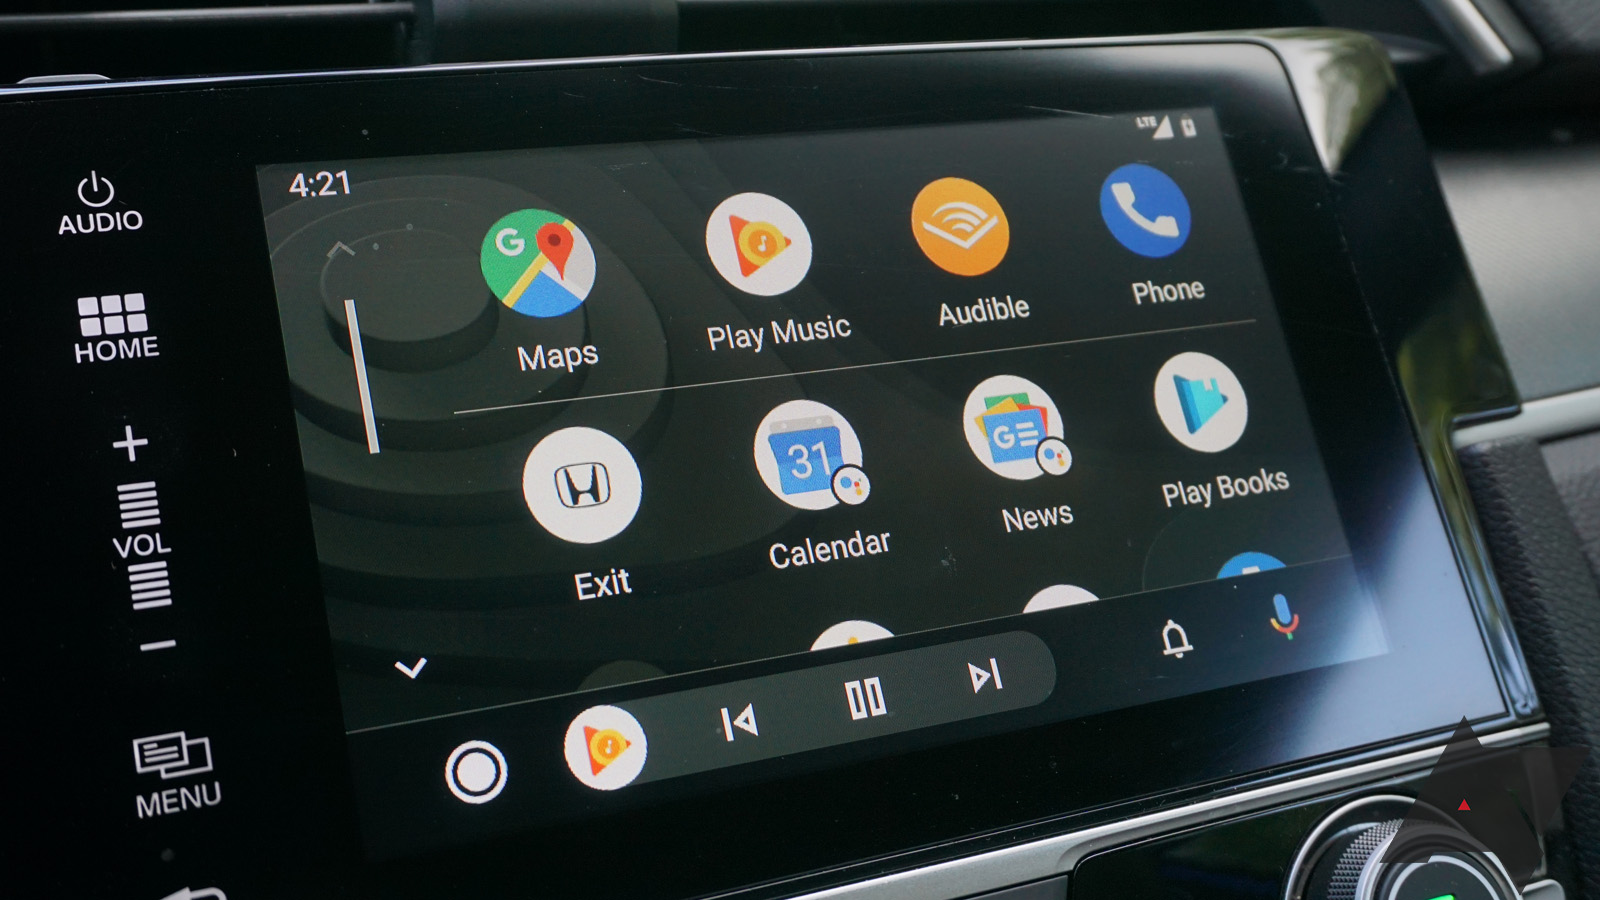 The new Android Auto officially starts rolling out today